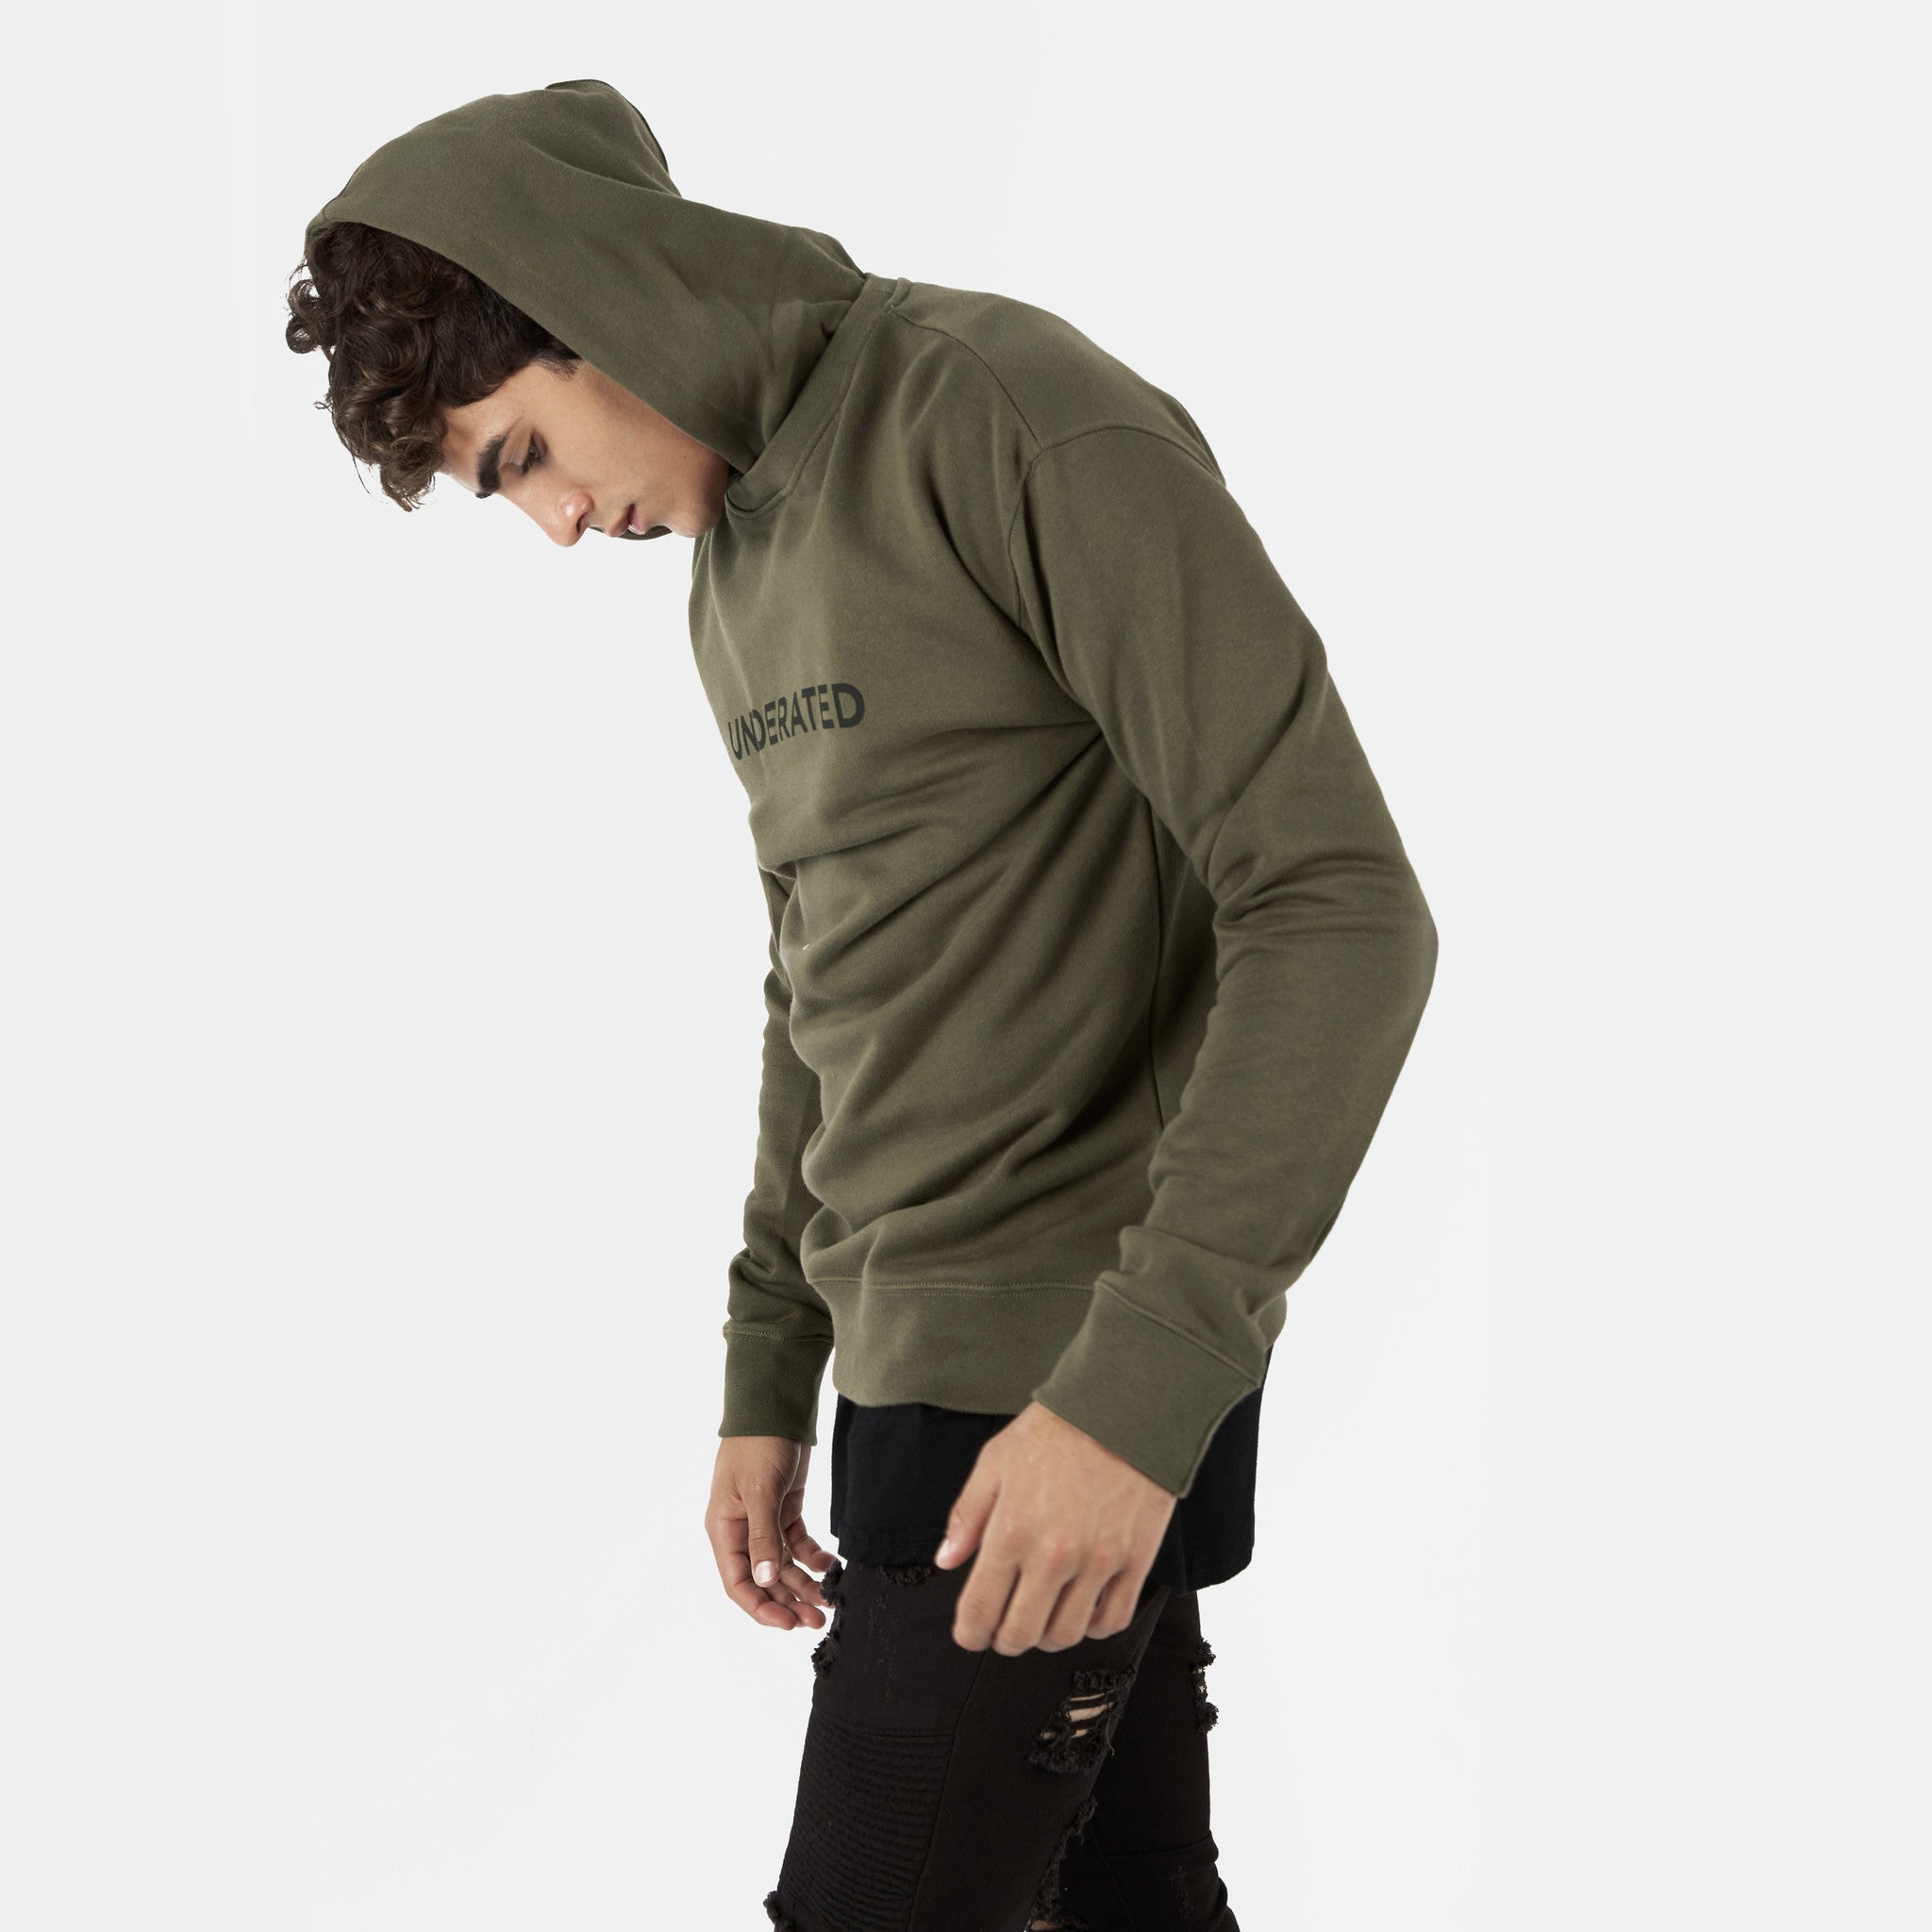 HD395 Essential Print Hoody - Khaki - underated london - underatedco - 3